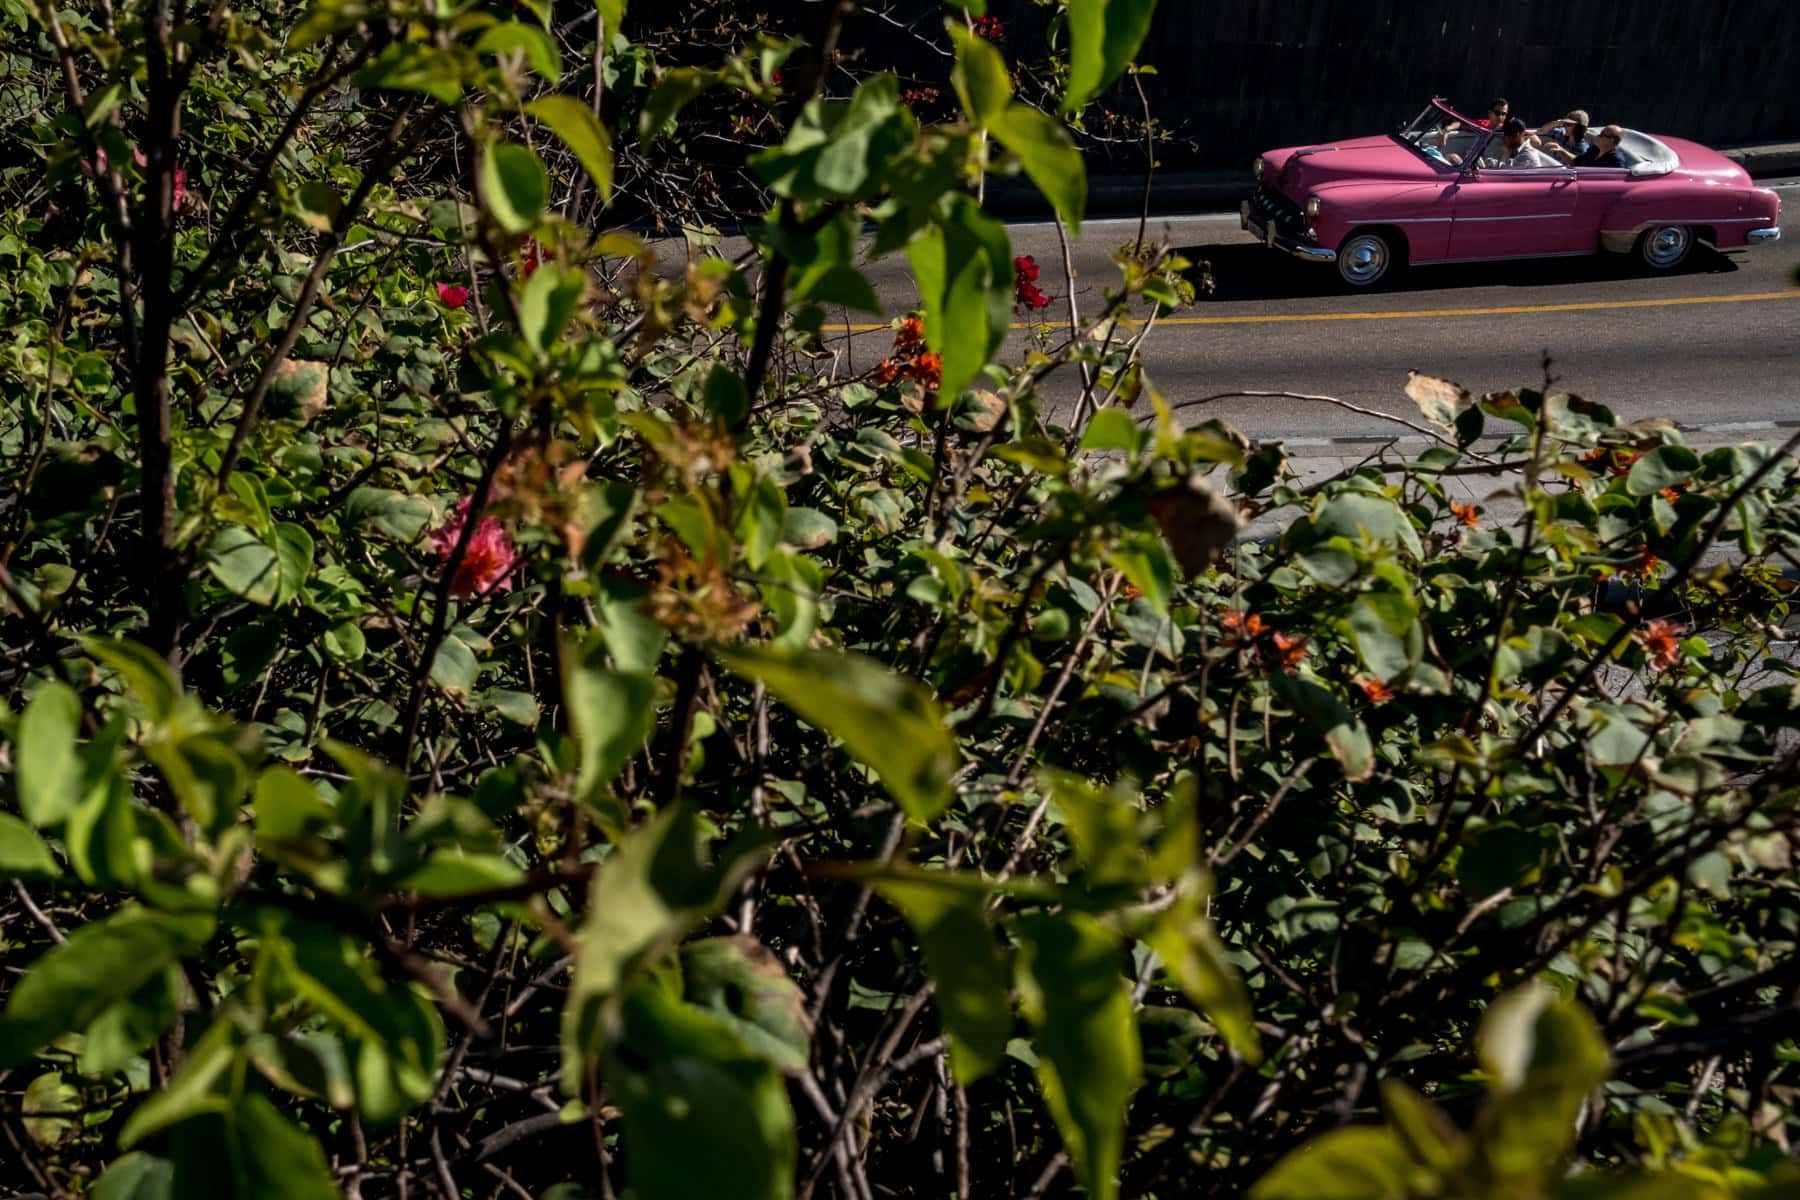 A classic pink cuban car in Havana